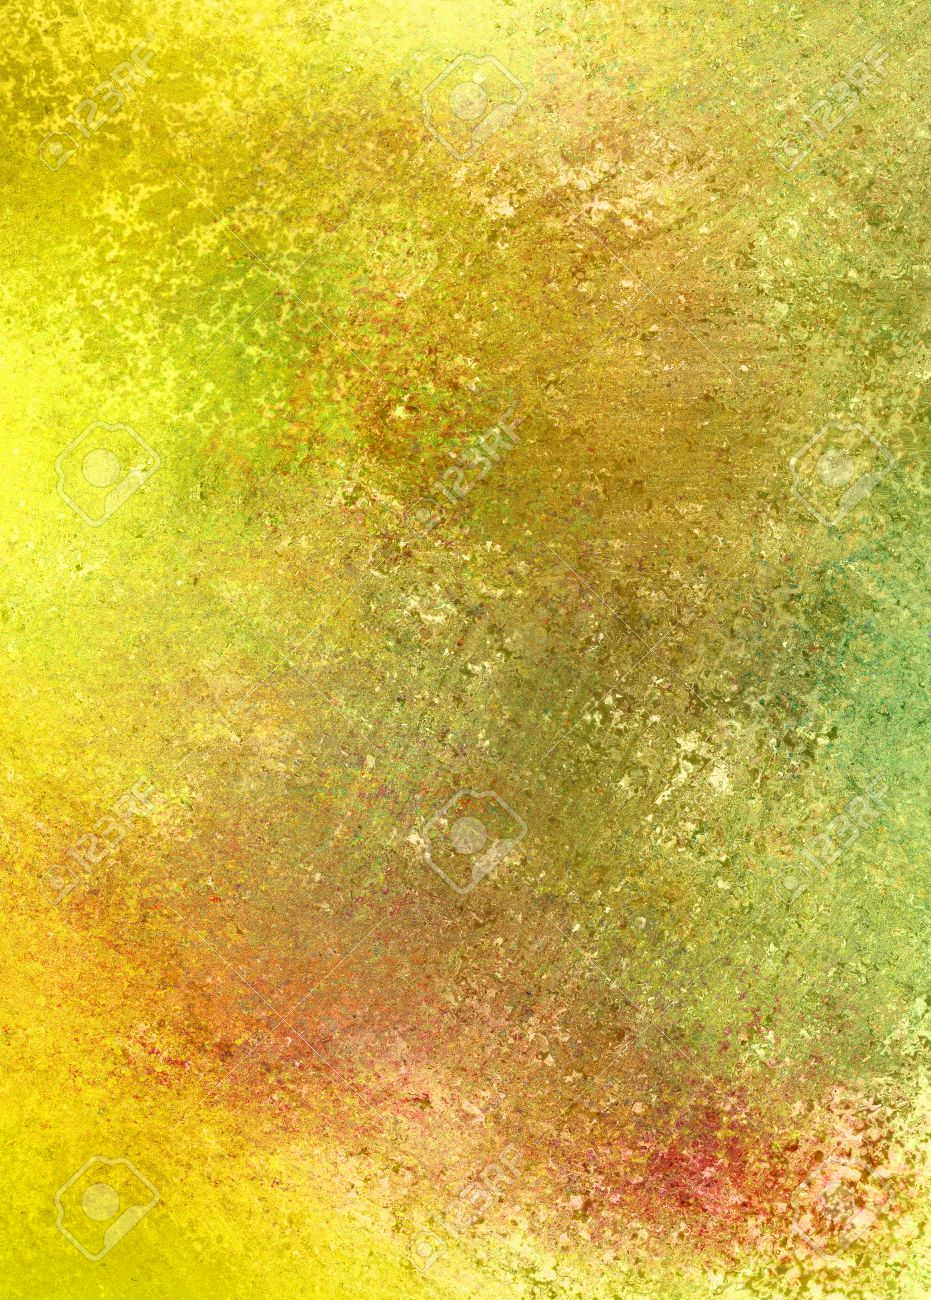 yellow gold background abstract paint illustration, bright vibrant